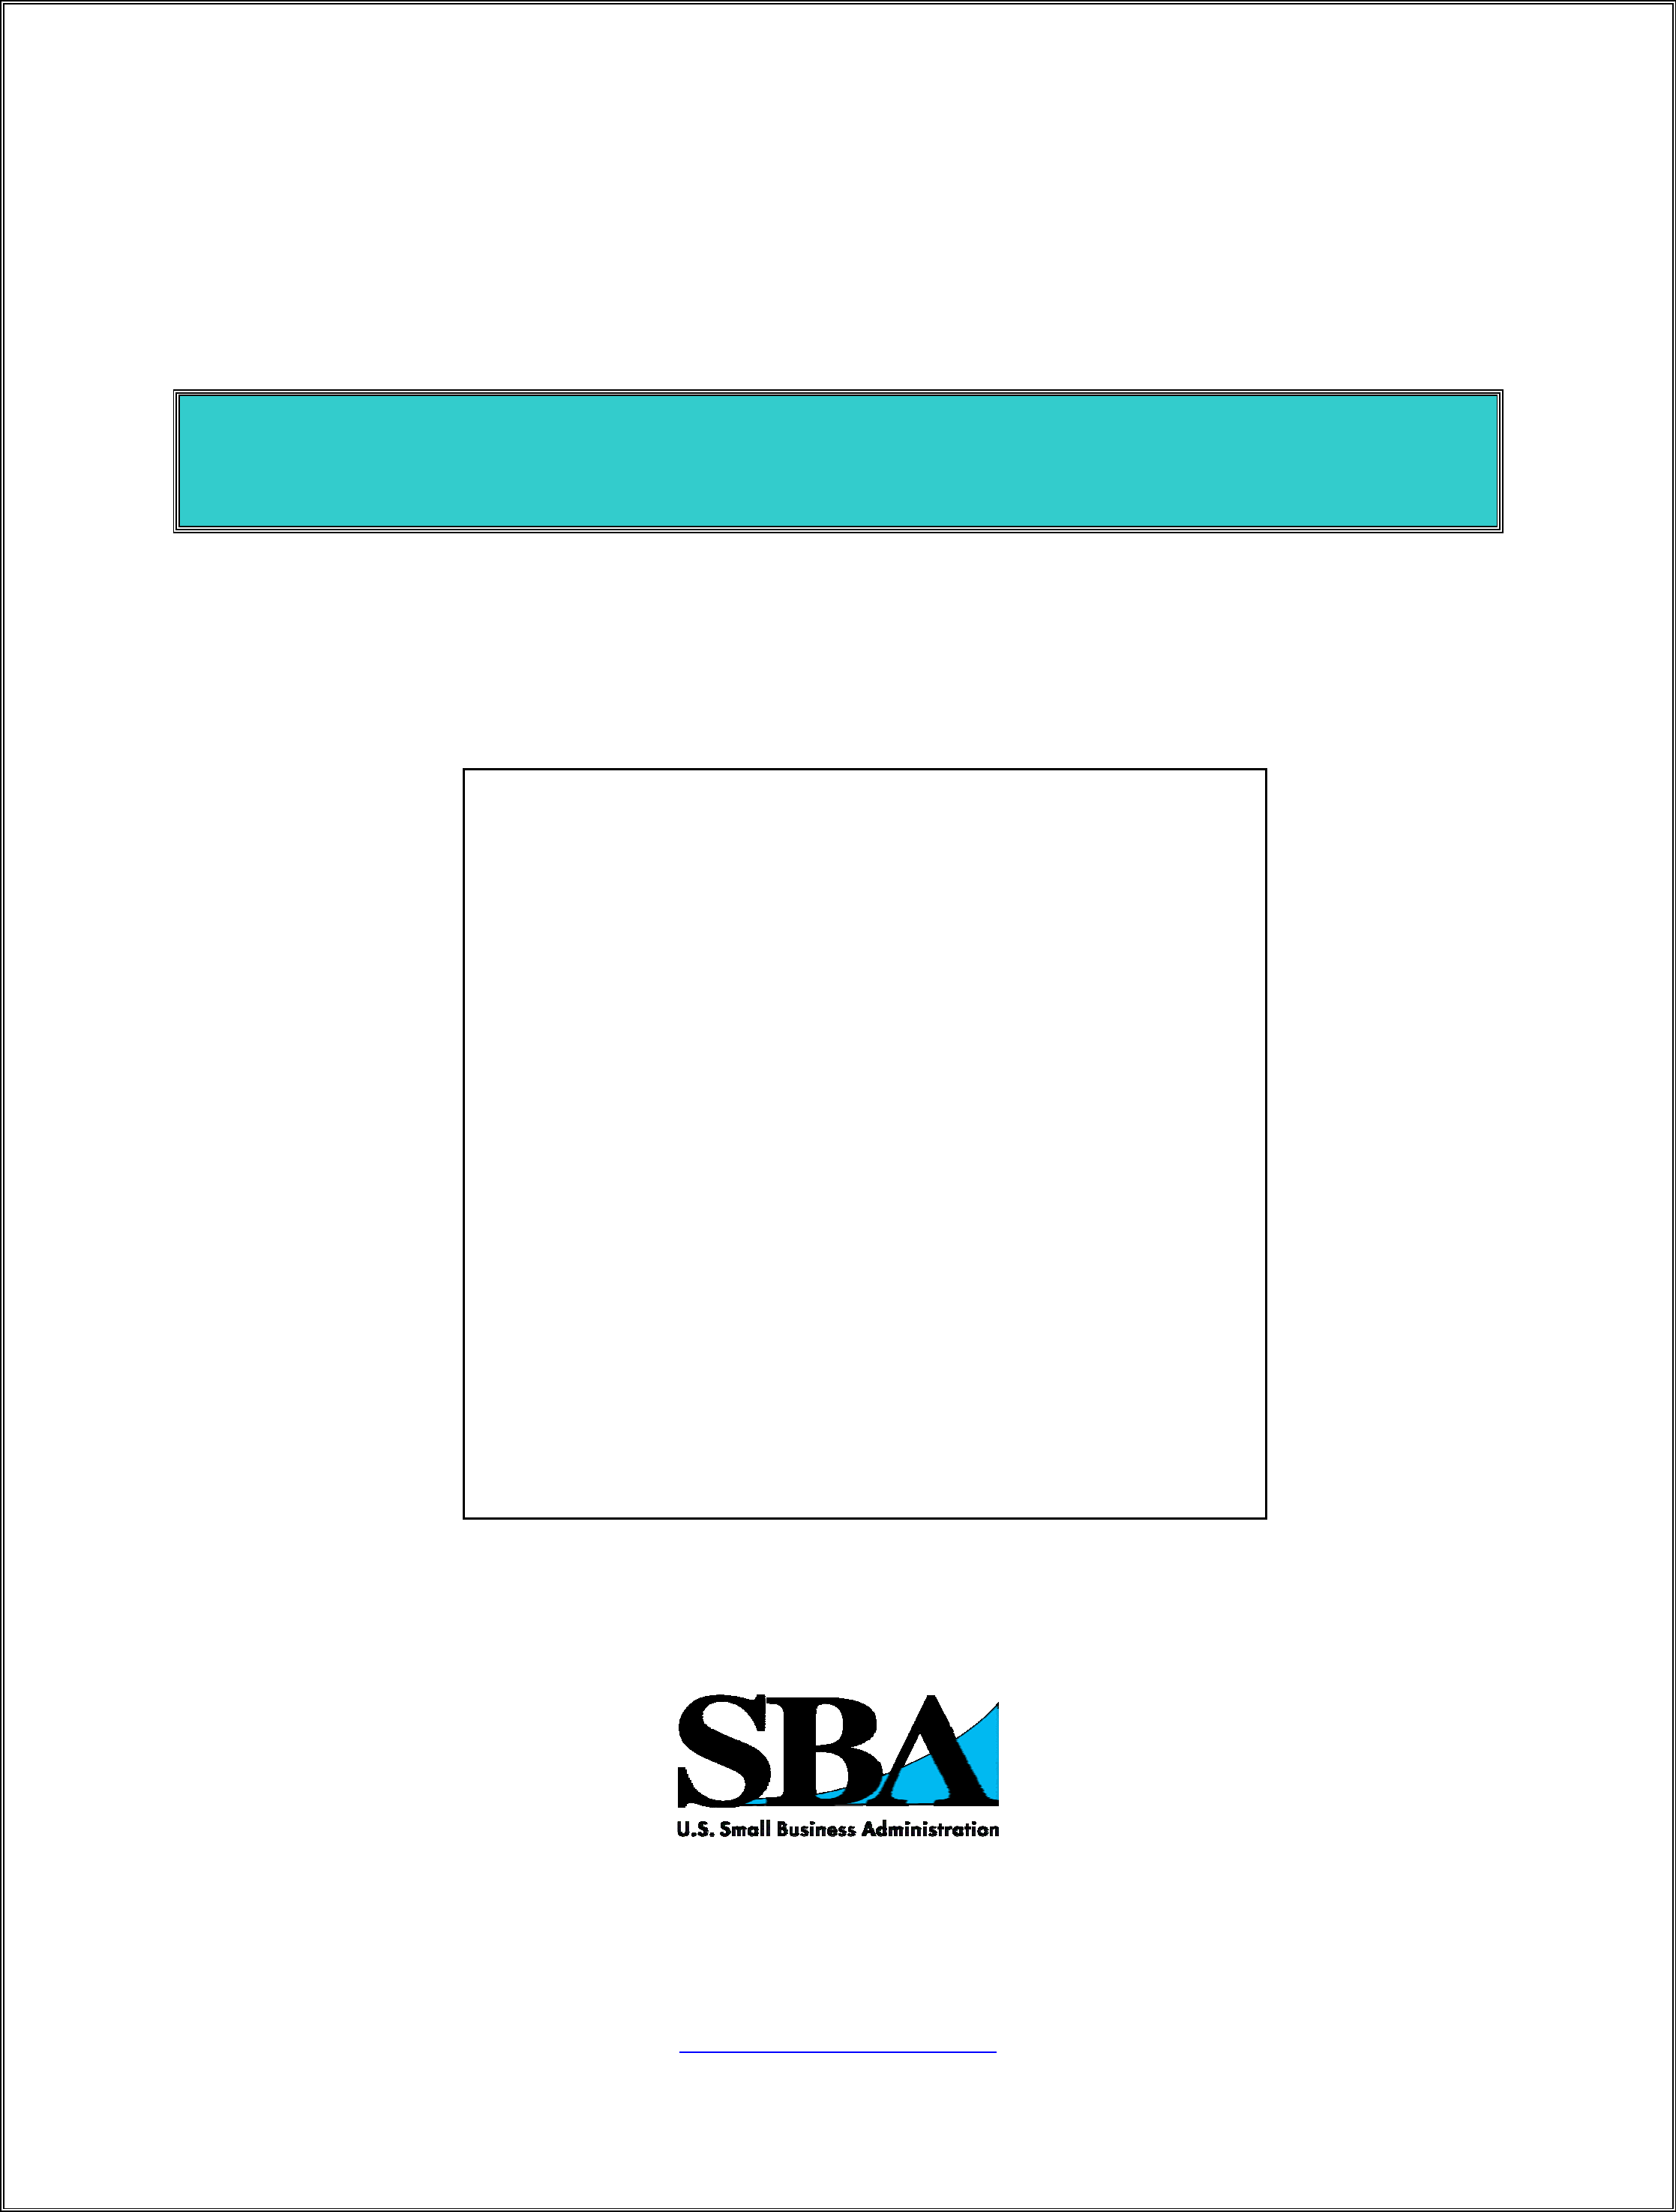 Sba gov guide for writing a business plan